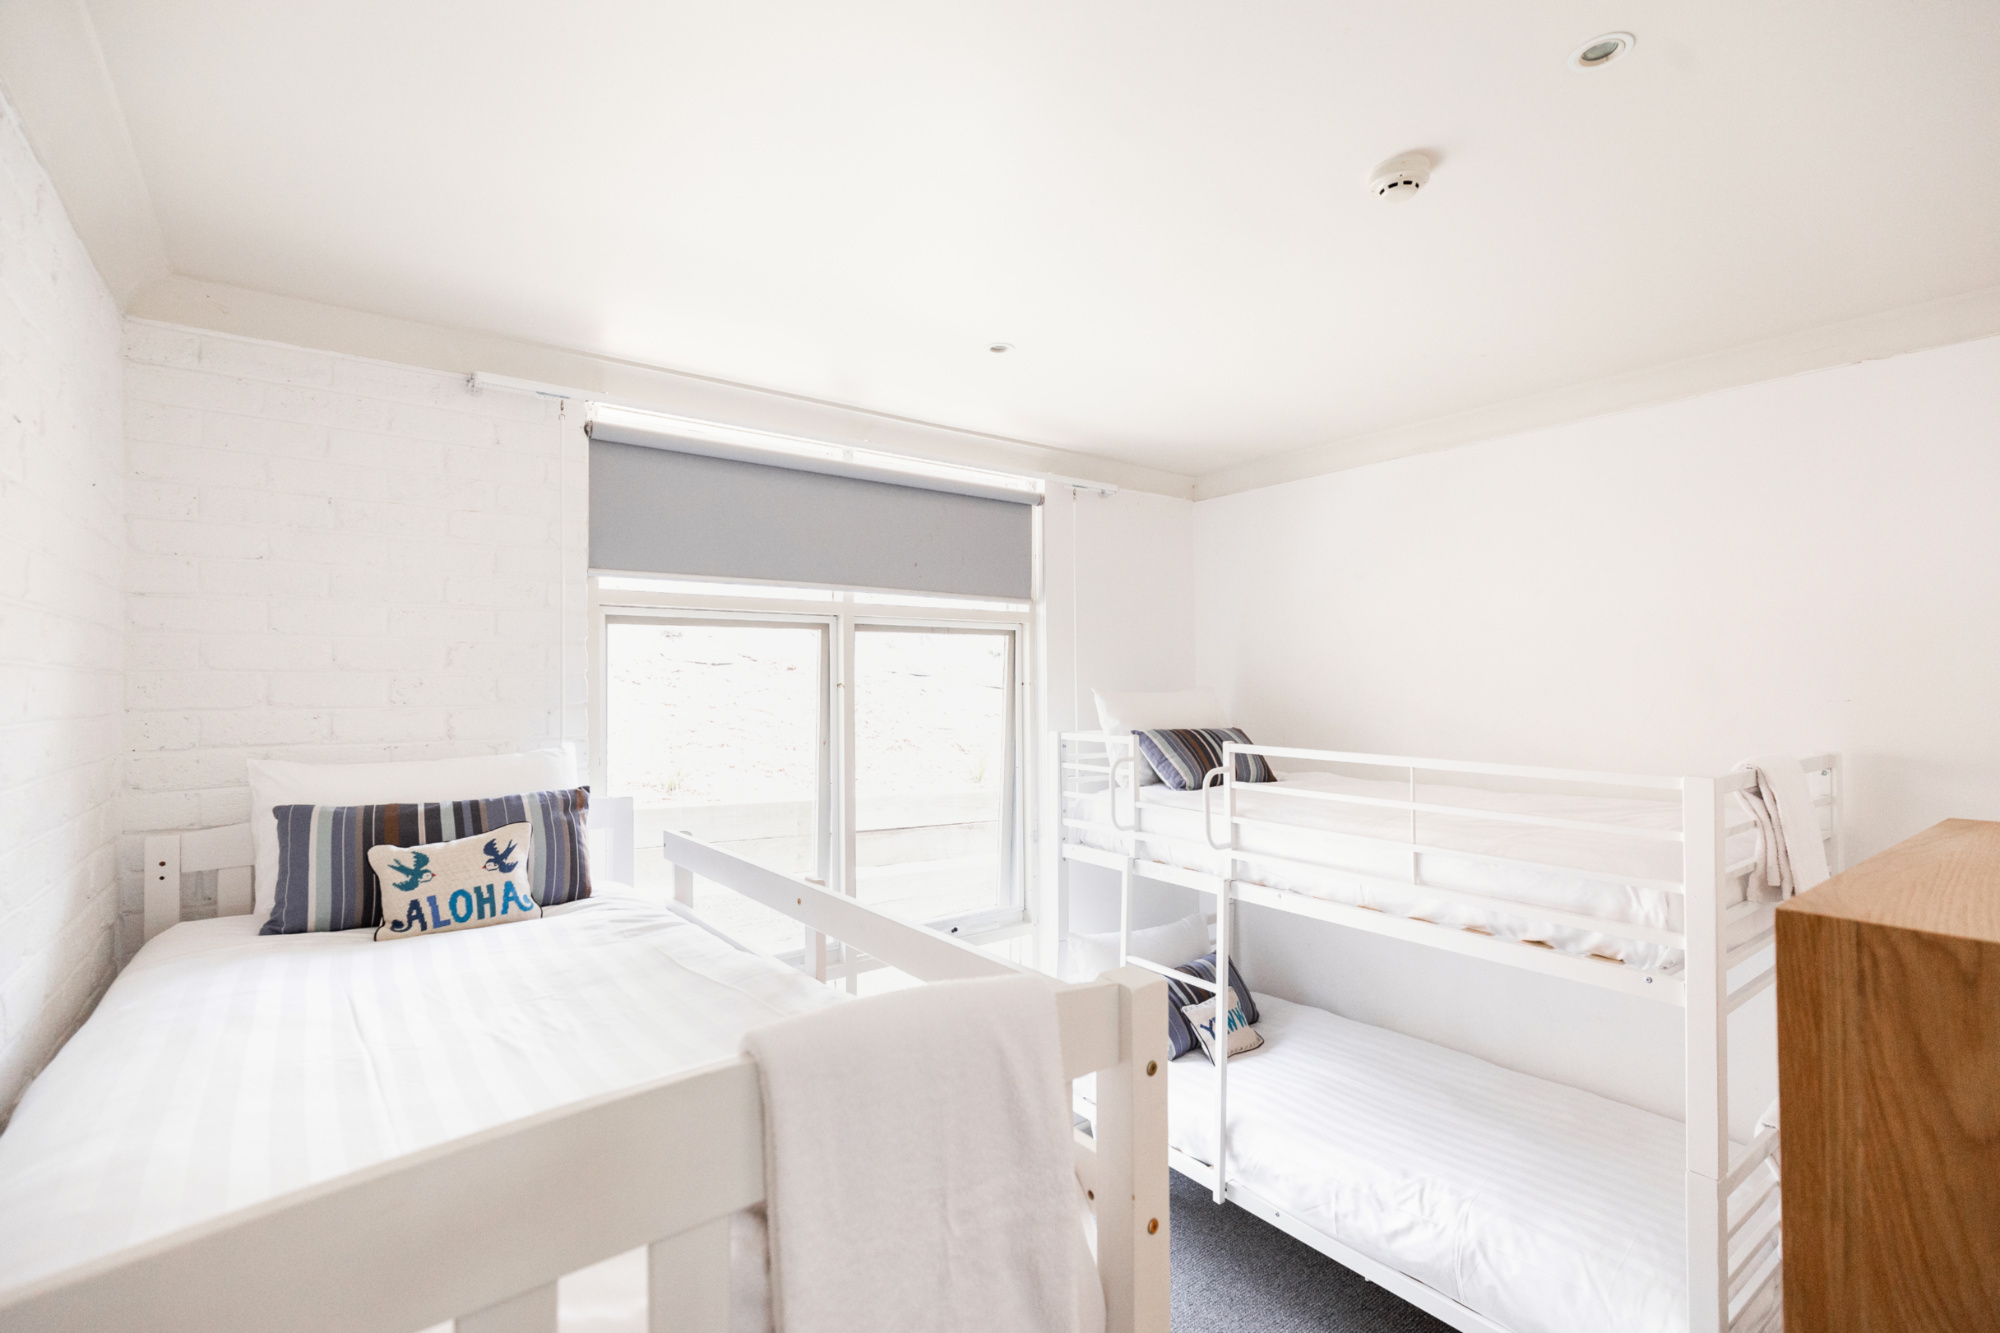 Lorne_hotel_unit_bunks.jpg